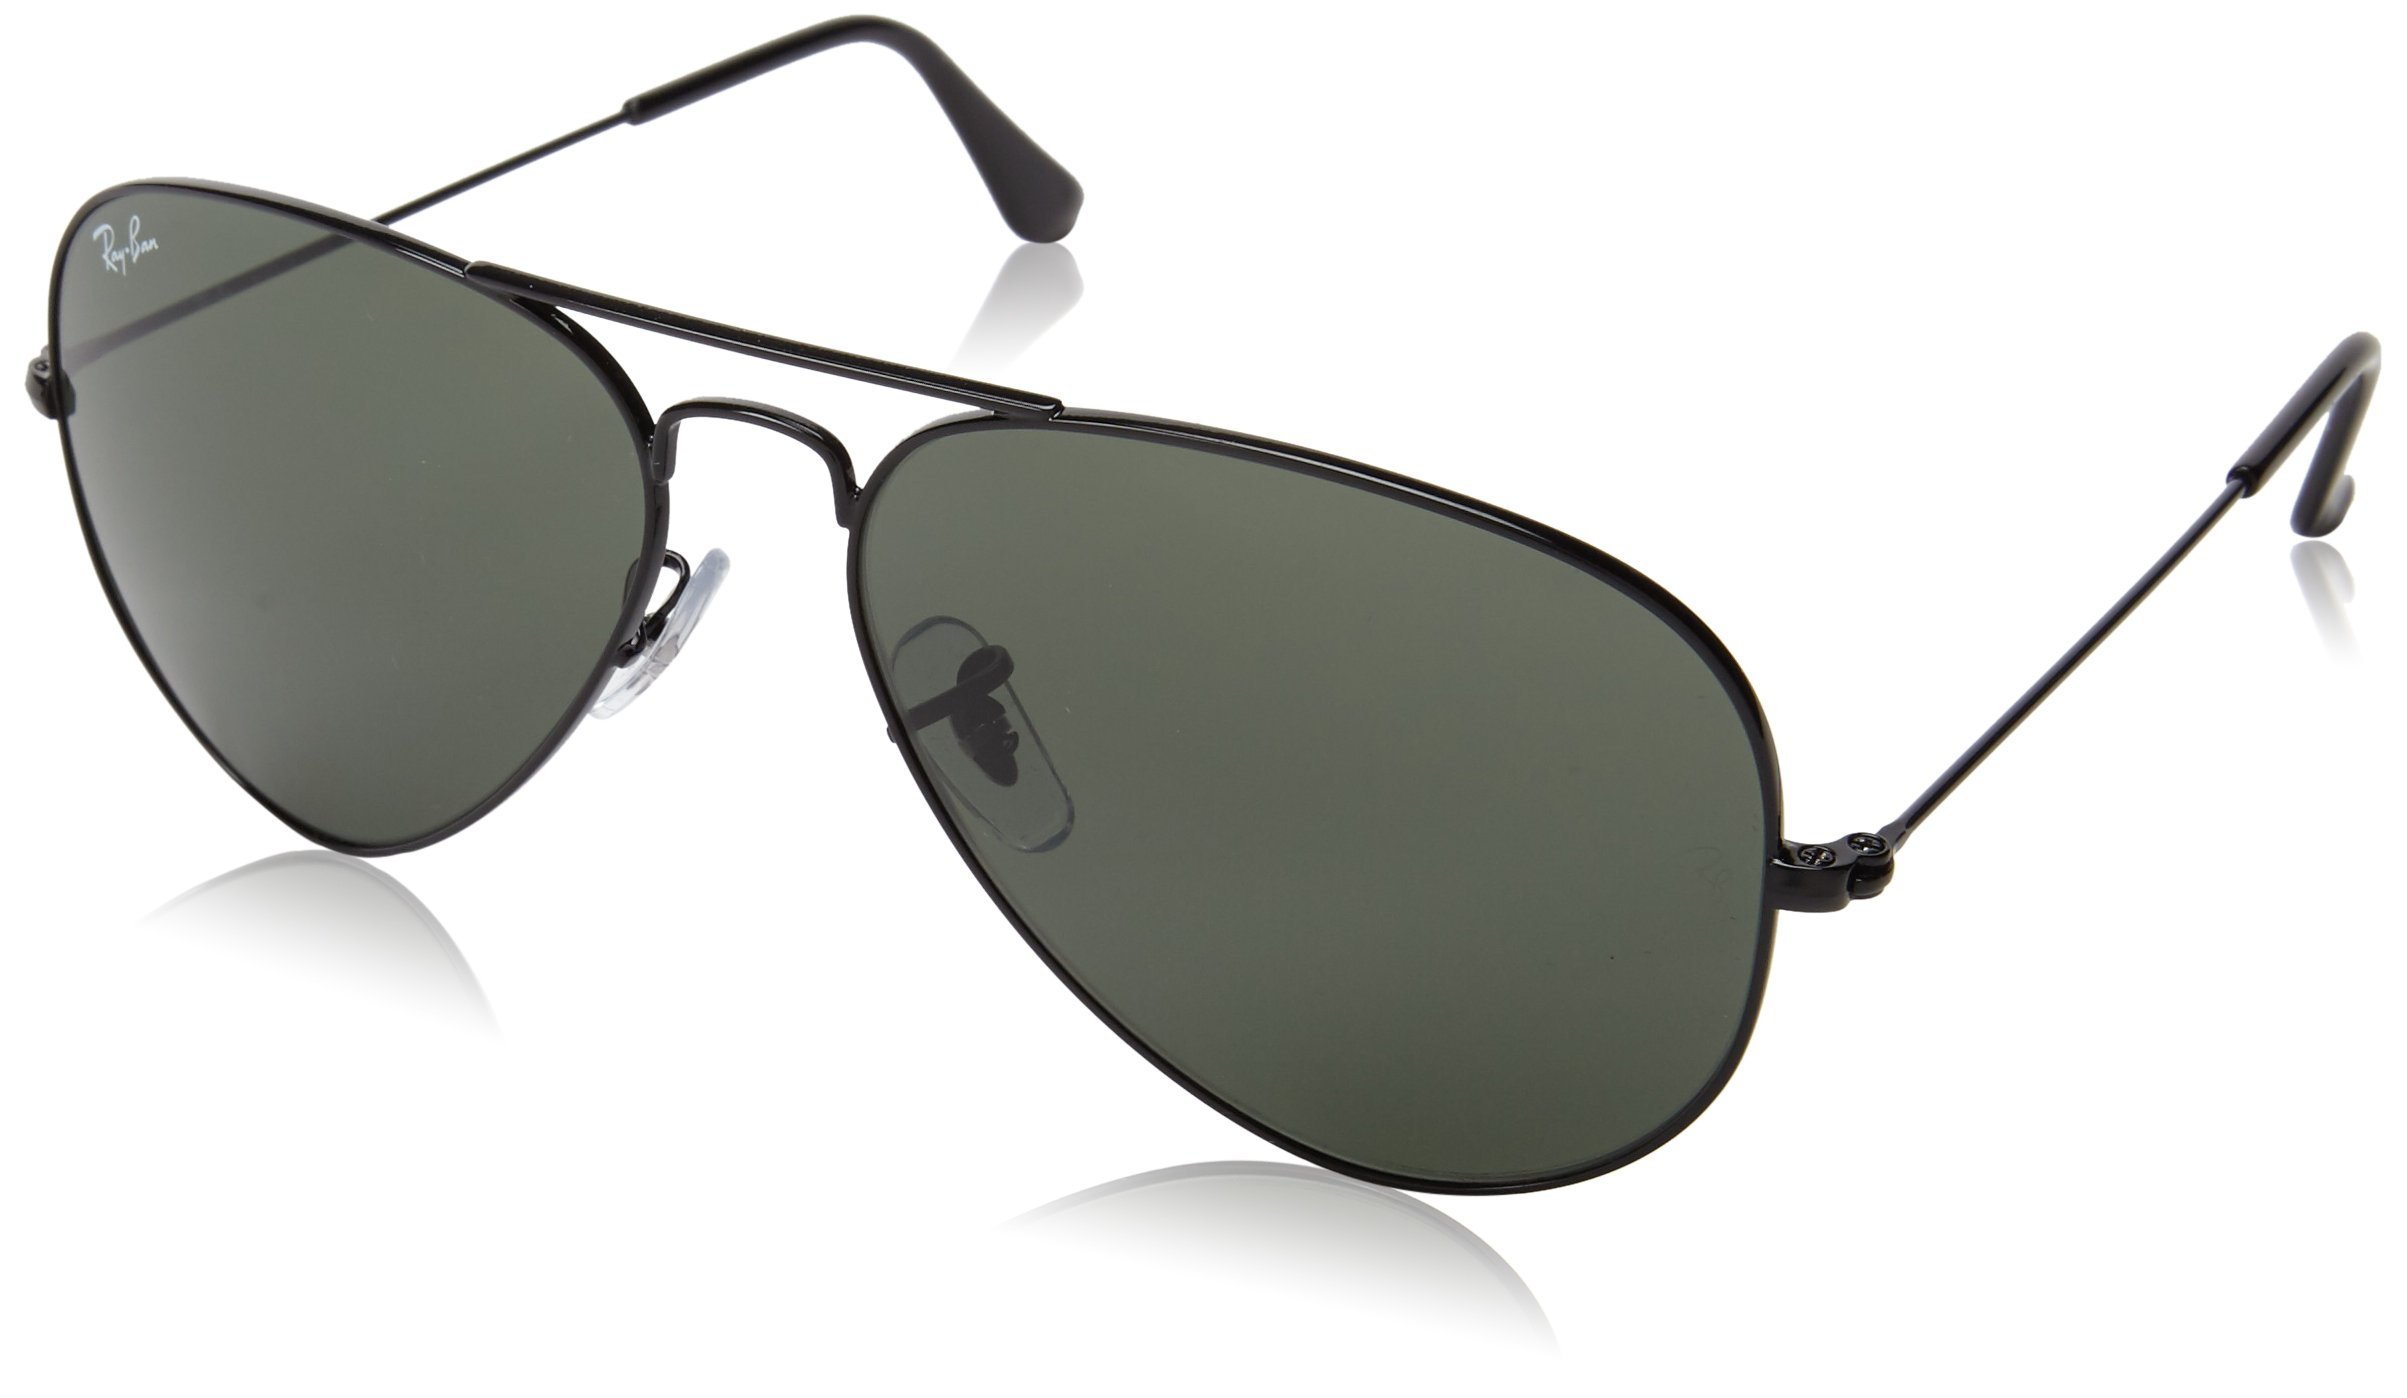 Ray-Ban Aviator Classic, Black/ G-15xlt, 58mm